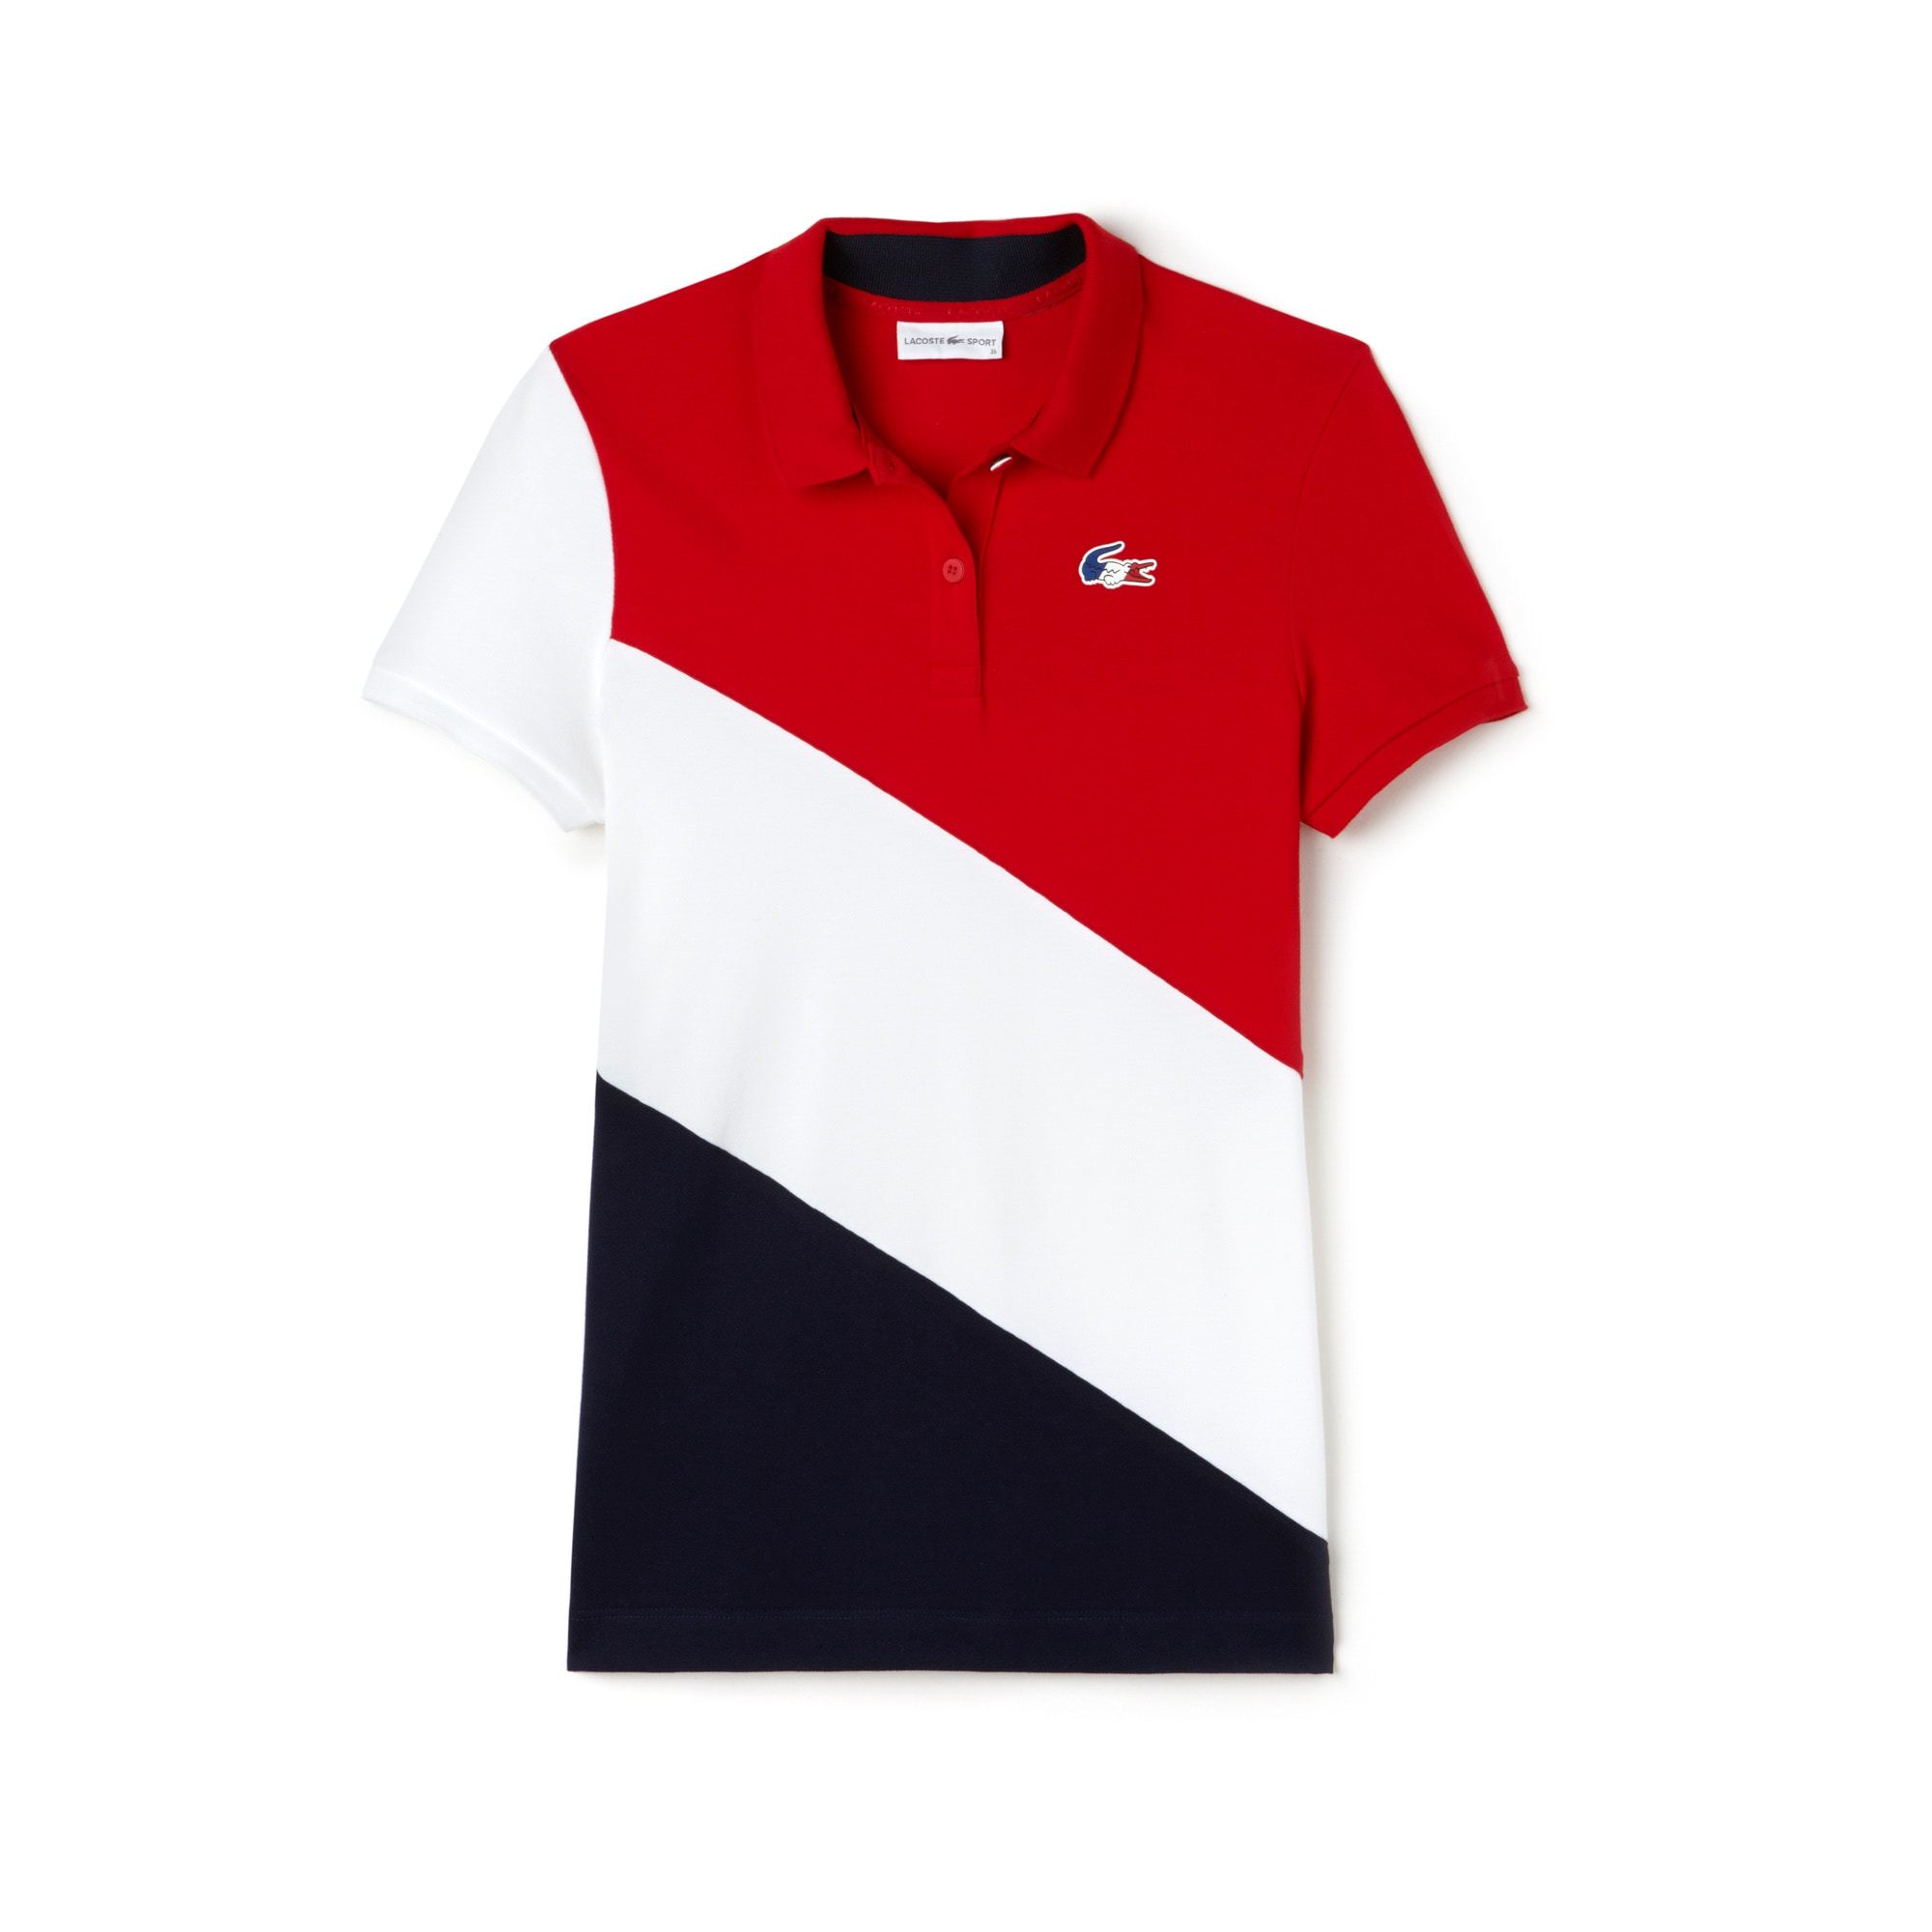 Polos femme v tements femme lacoste for Coccodrillo lacoste